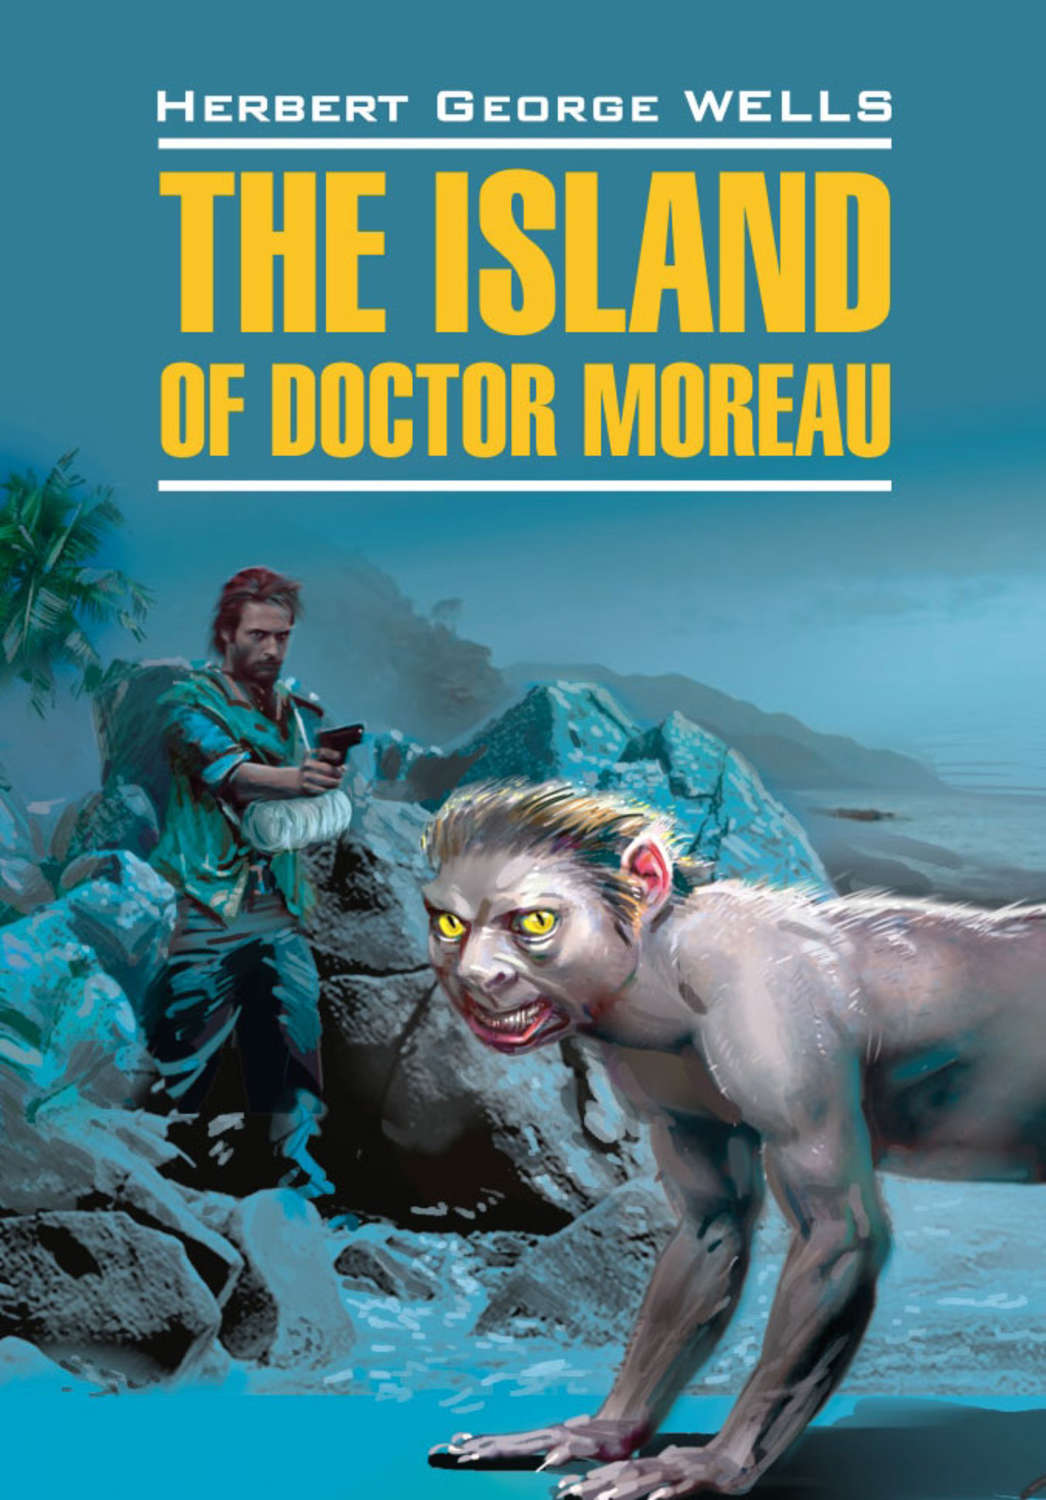 evolution and the island of doctor moreau This version of the island of dr moreau-starring burt lancaster and michael york-is a rousing adventure/horror film 13 october 2009 | by tavm - see all my reviews this is the second film adaption of h g wells' the island of dr moreau i've seen, the previous one being 1933's island of lost souls.